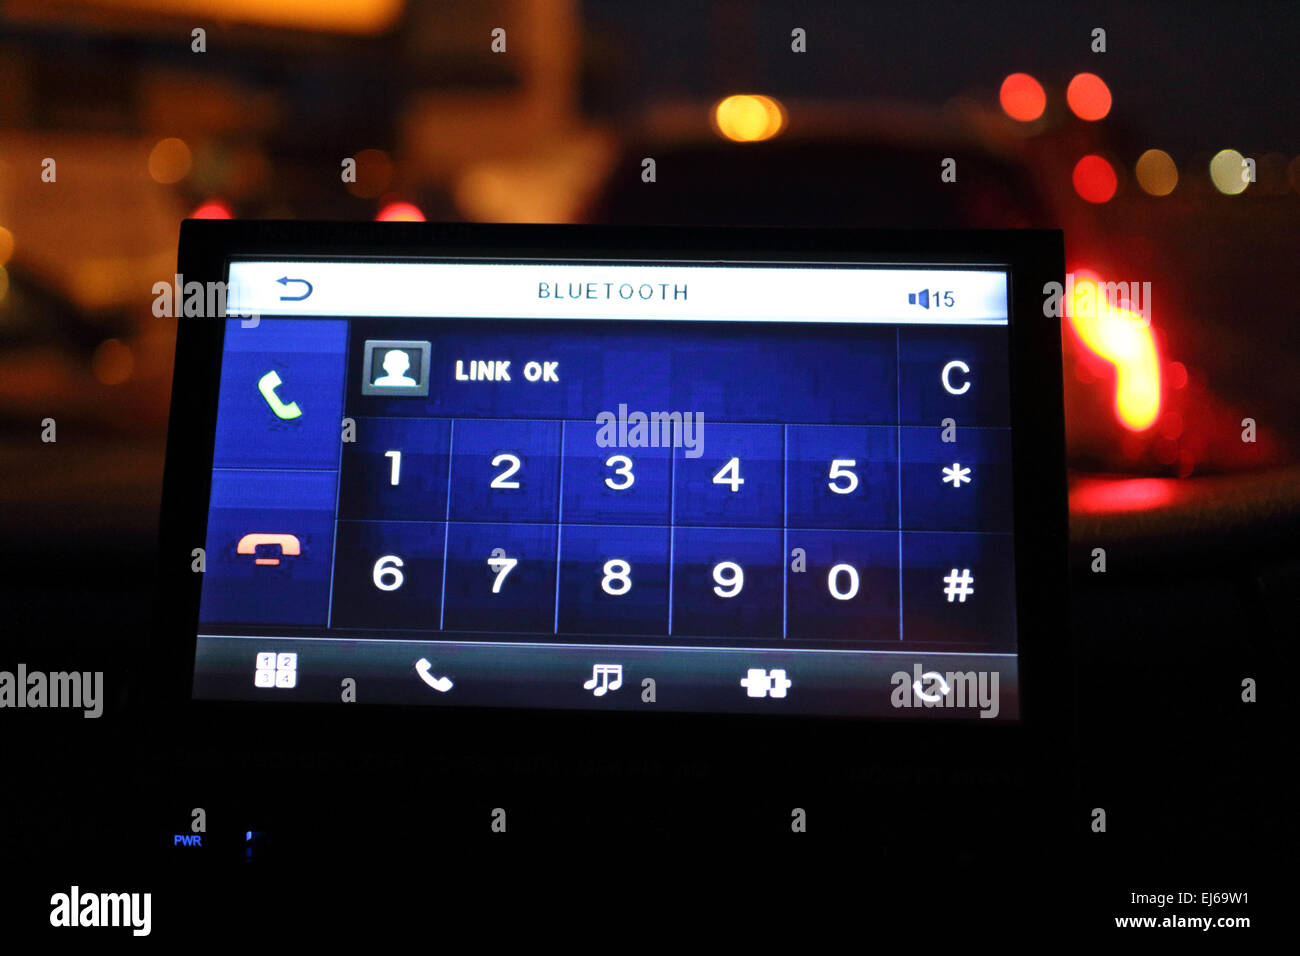 bluetooth mobile phone link screen in vehicle dashboard in traffic at night - Stock Image